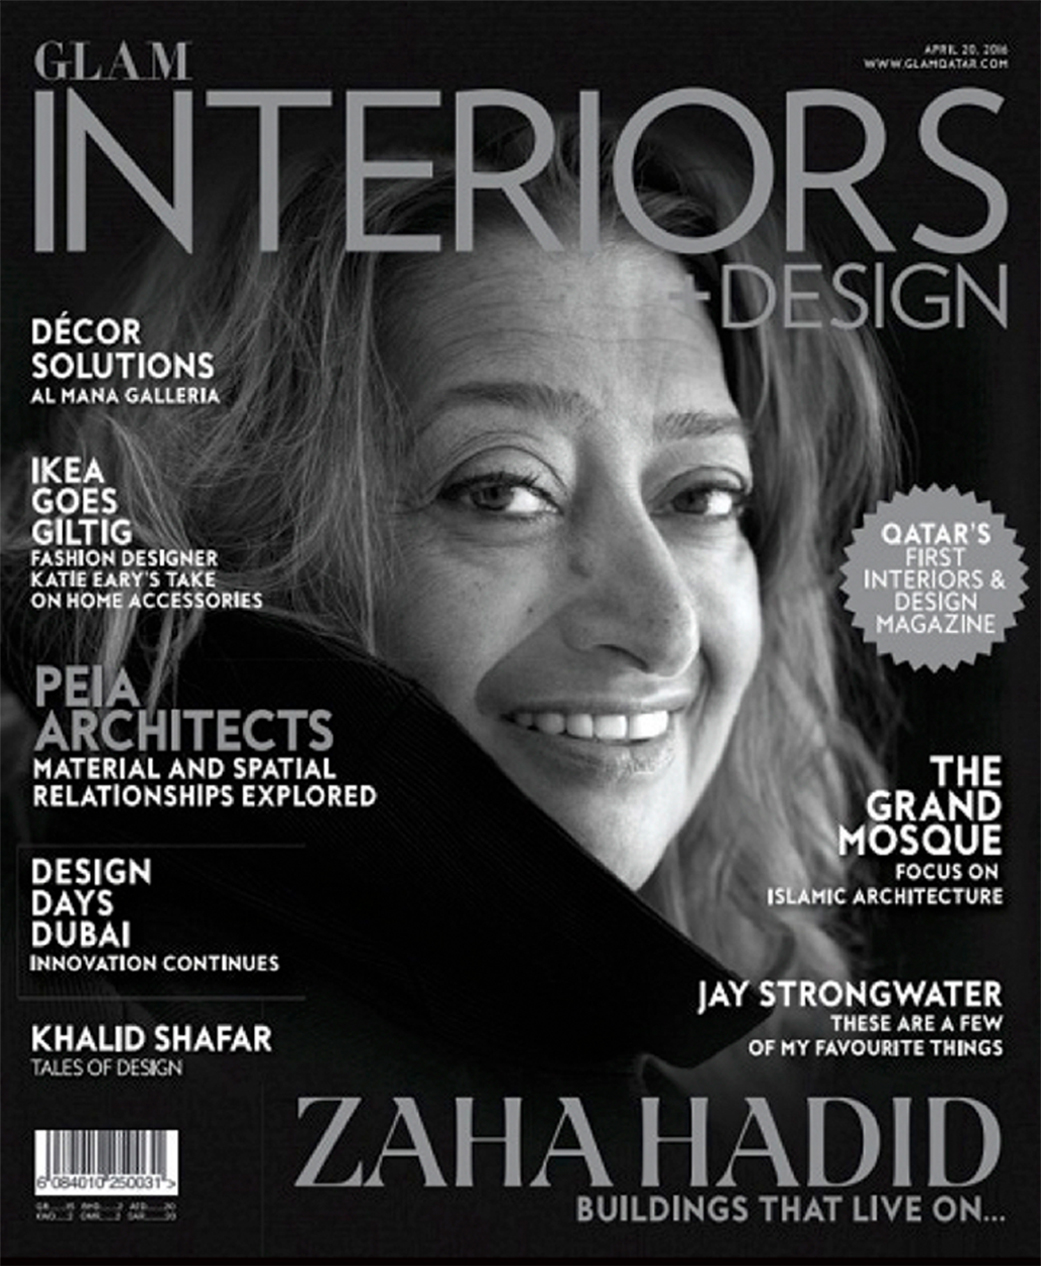 interiors_web_cover.jpg